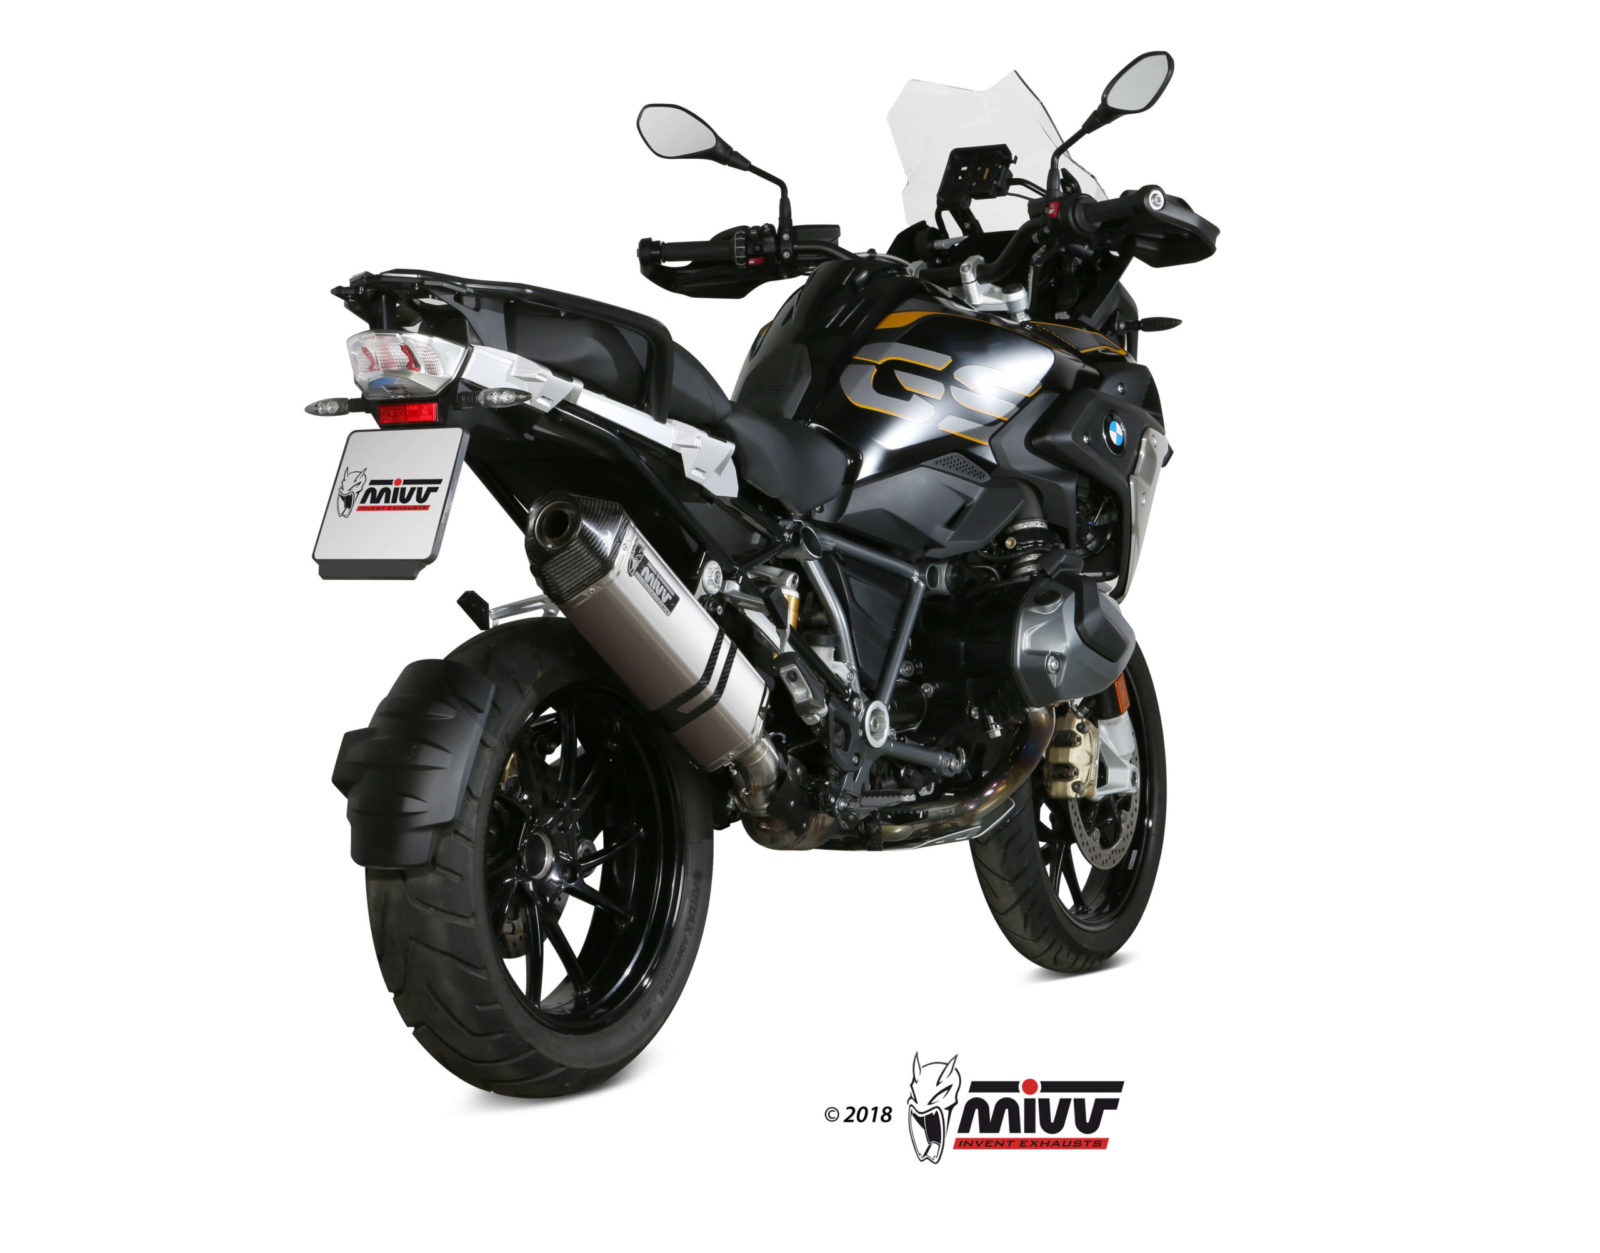 BMW_R1250GS_2018-_73B034LRX_02_PPG-1-scaled